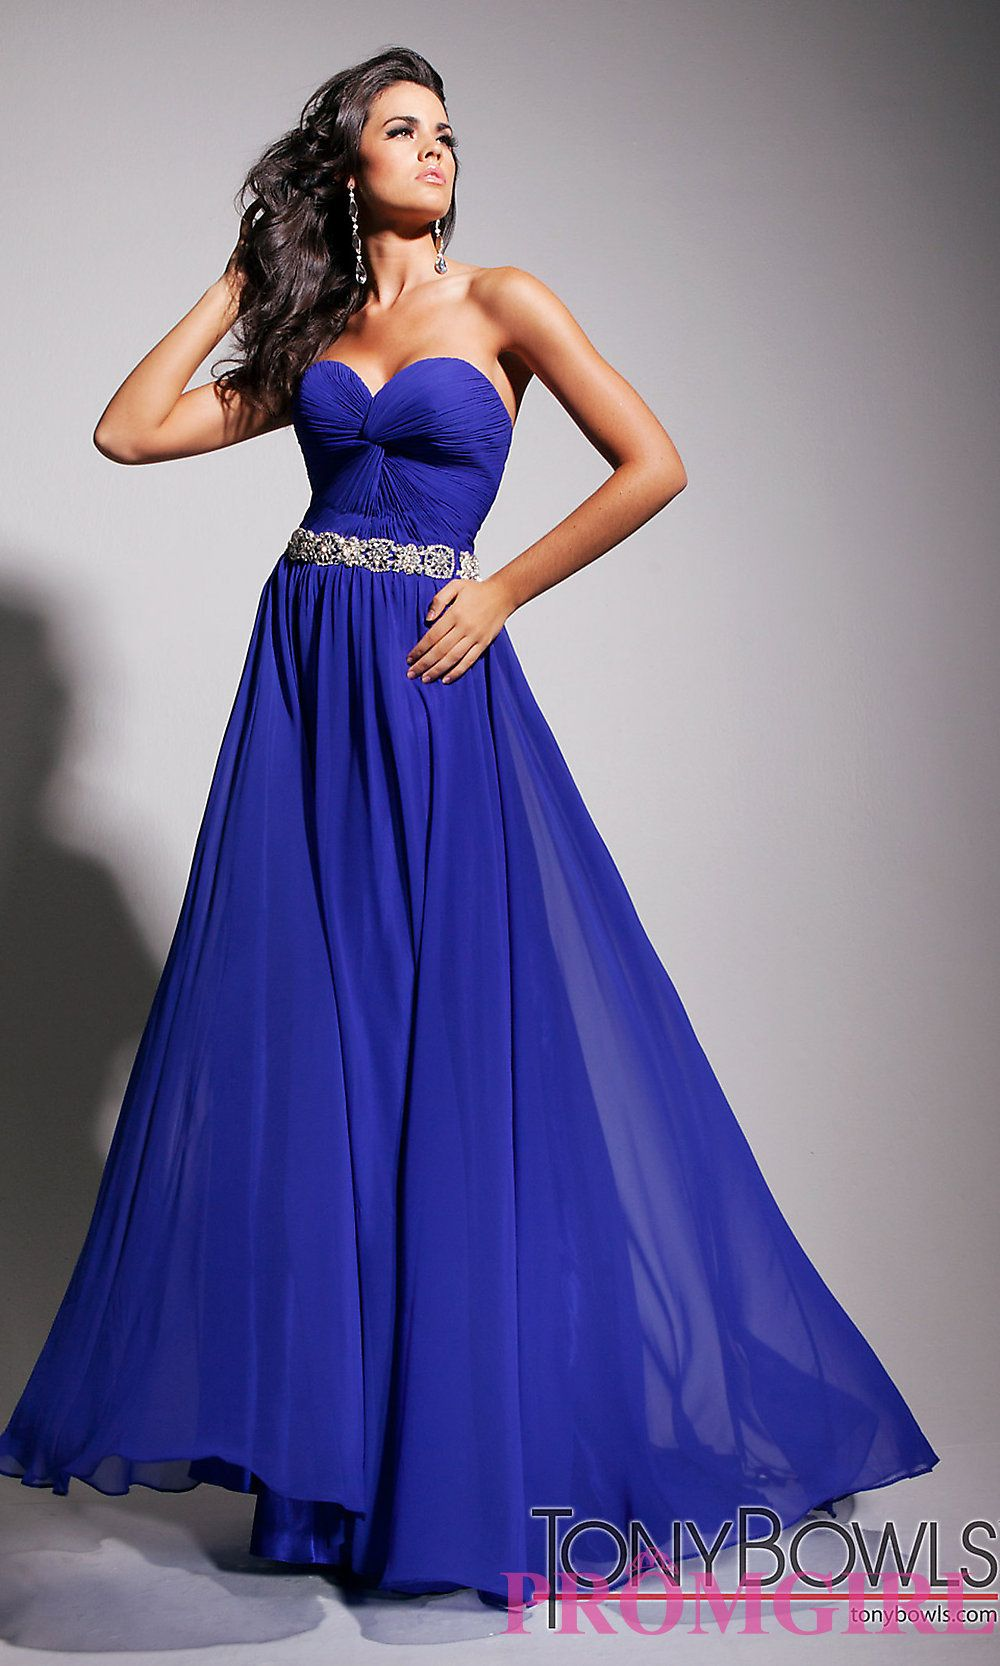 royal blue dresses | Strapless Pink Prom Gown, Tony Bowls Strapl ...